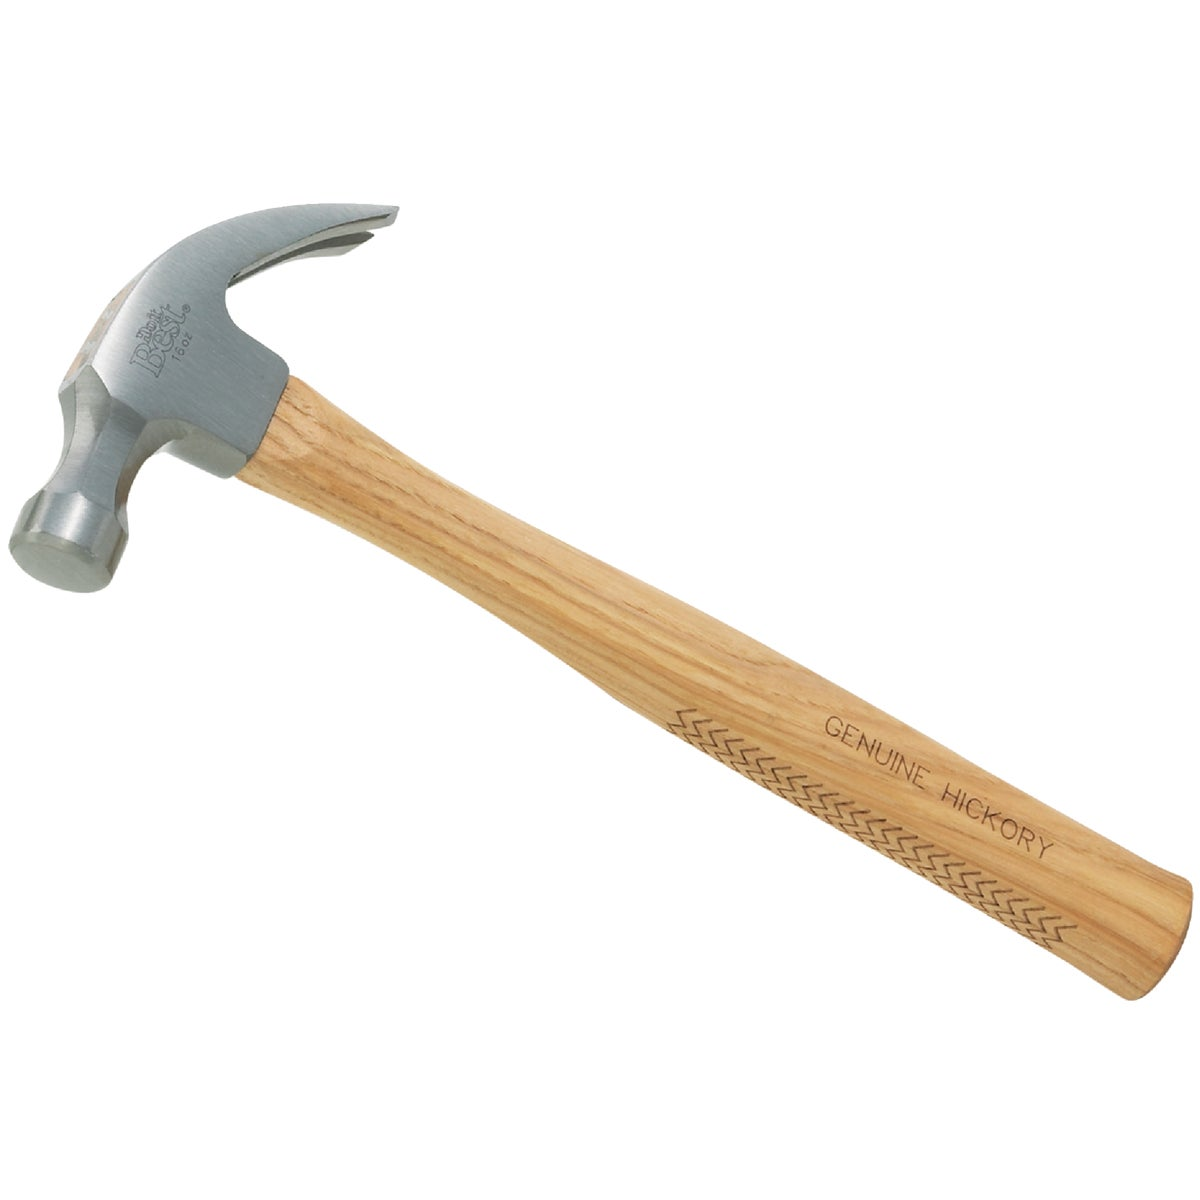 16OZ WOOD CLAW HAMMER - 323590 by Danaher Tool Ltd